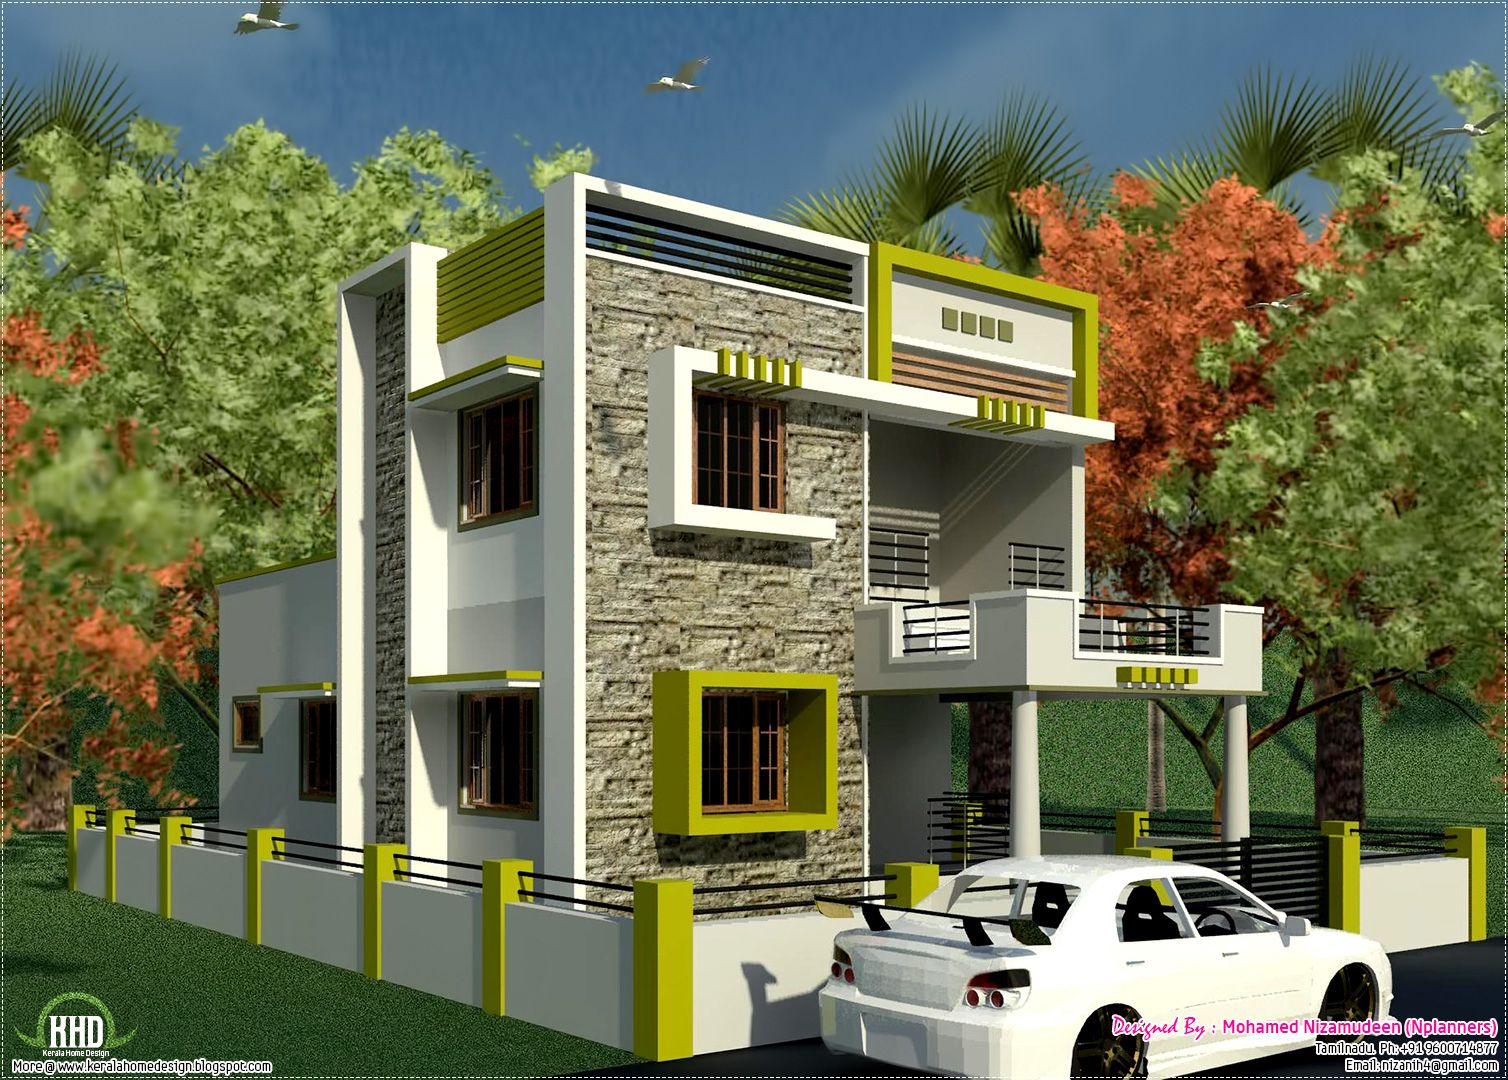 Small house with car park design tobfav com ideas for for Indian home front design